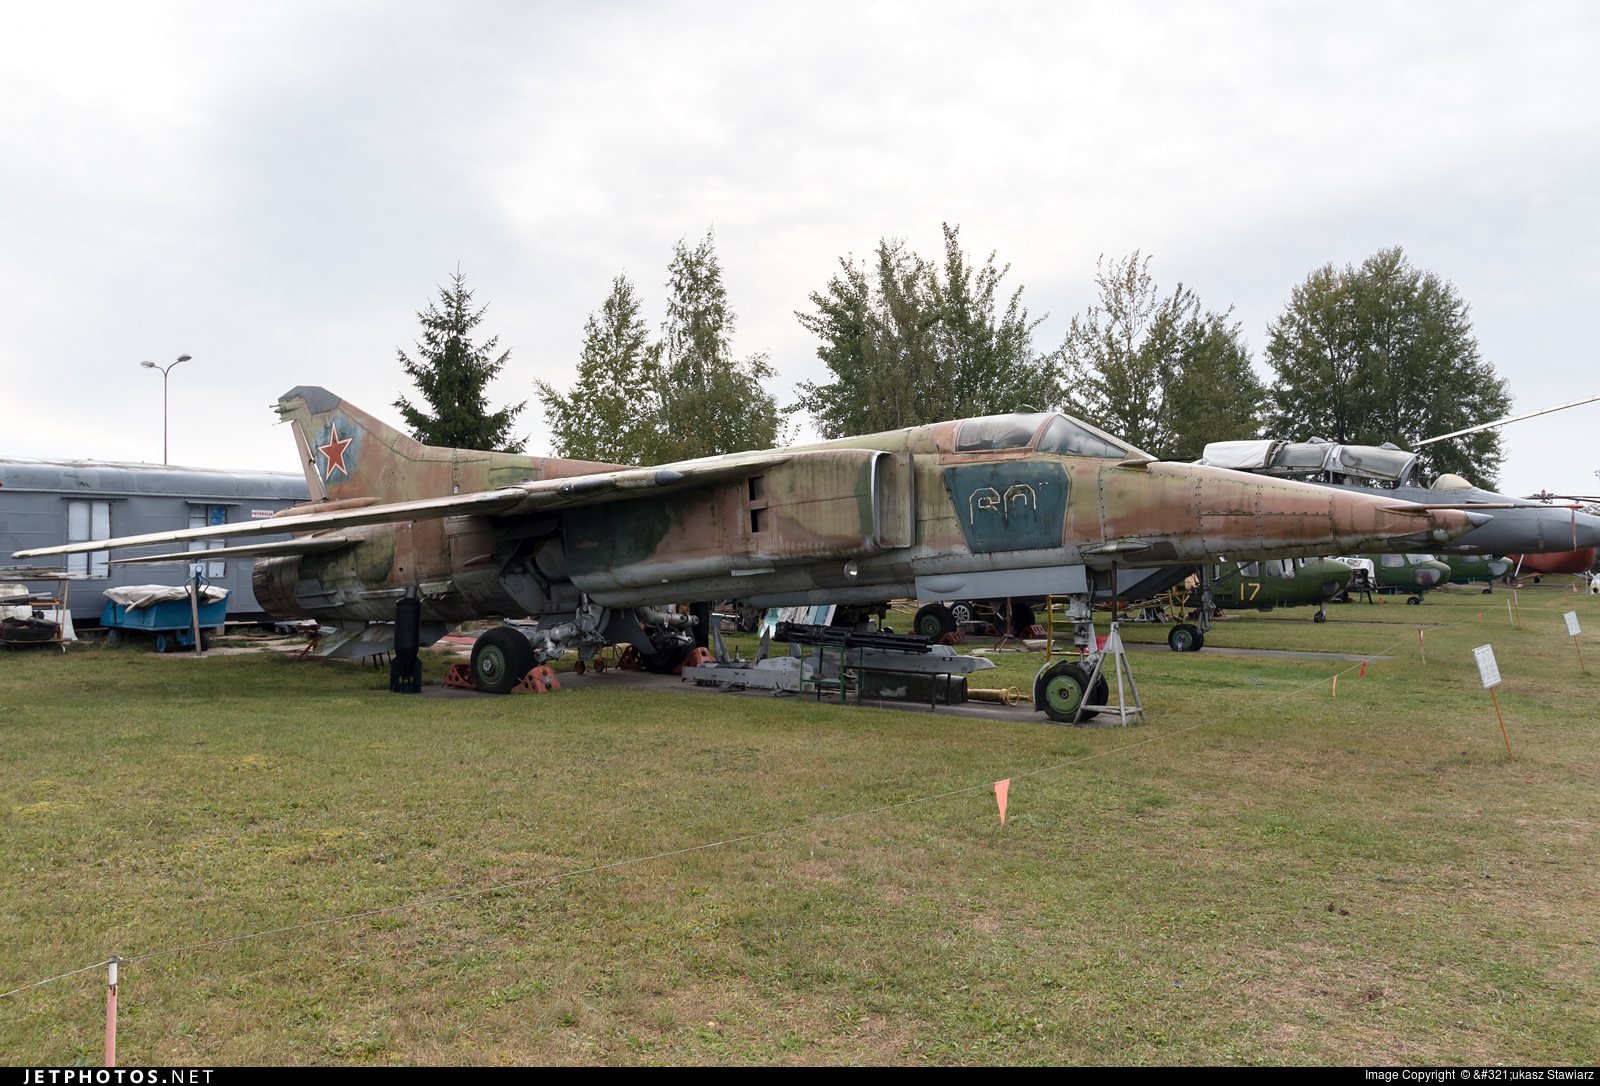 60 - Mikoyan-Gurevich MiG-27 Flogger - Russia - Air Force